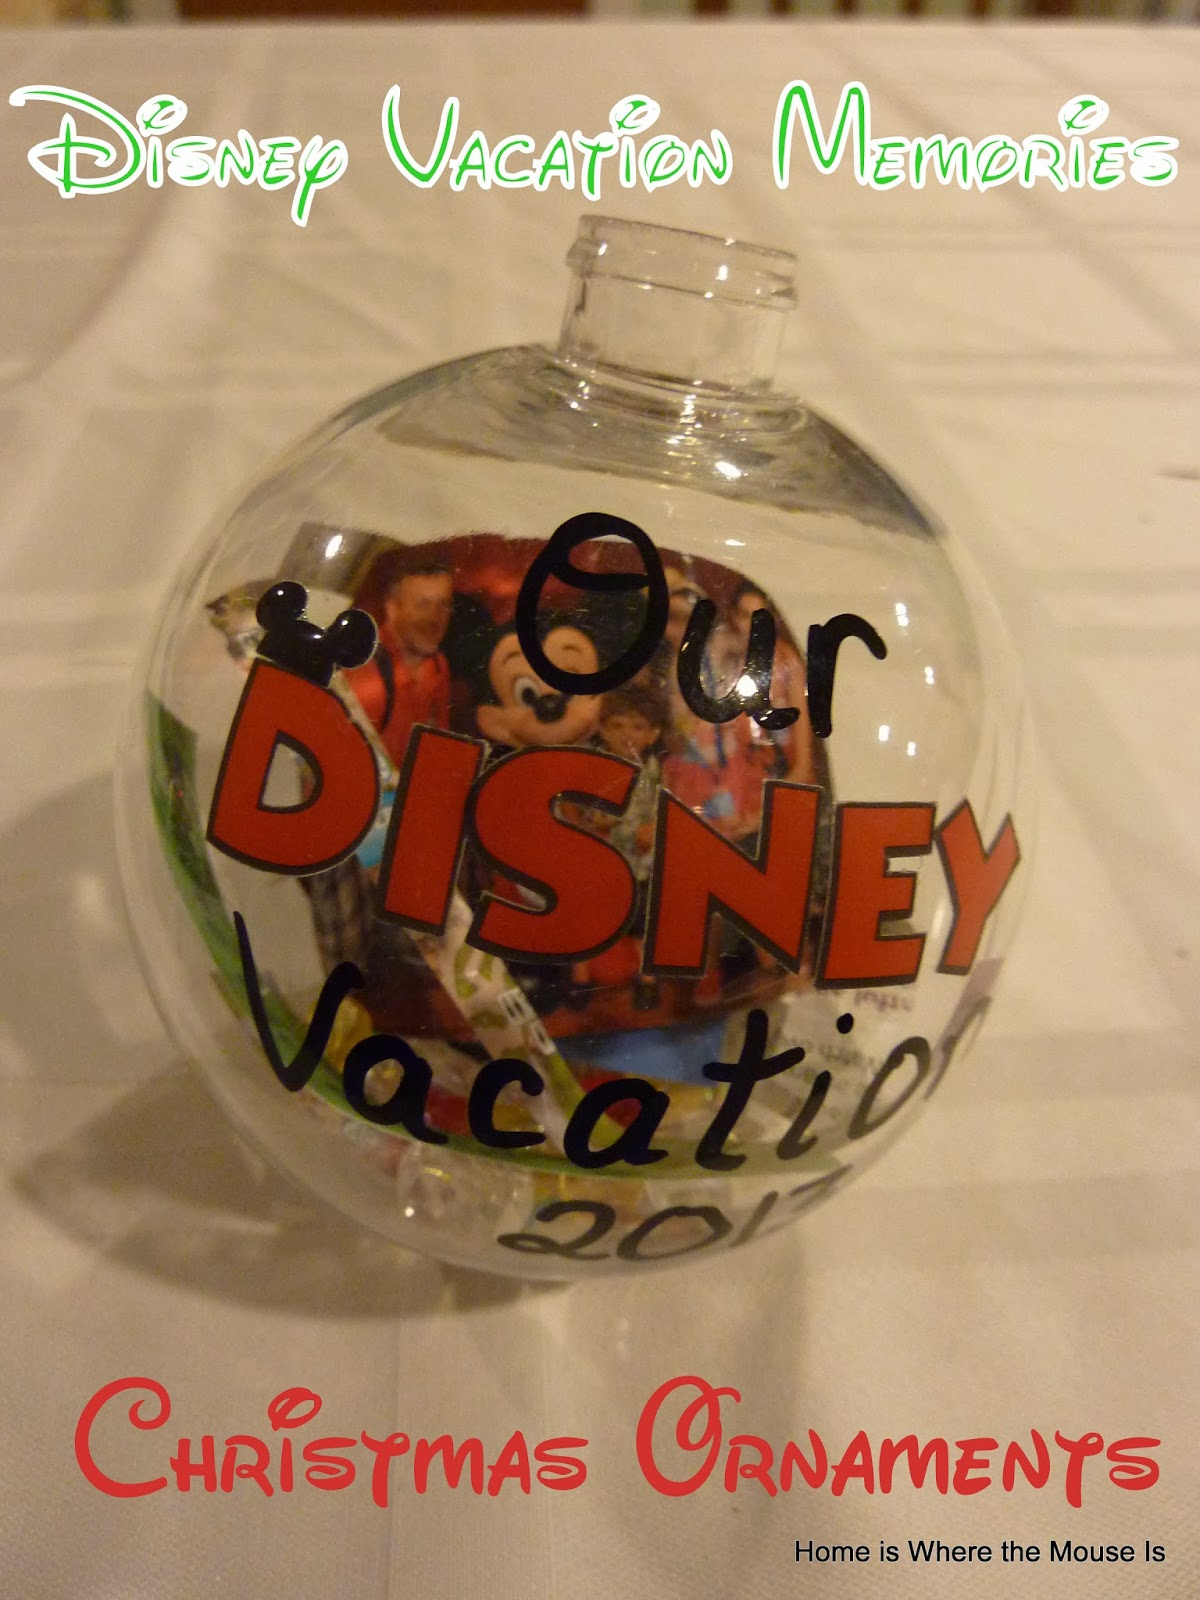 Disney Vacation Memories Christmas Ornaments | Adventures in ...